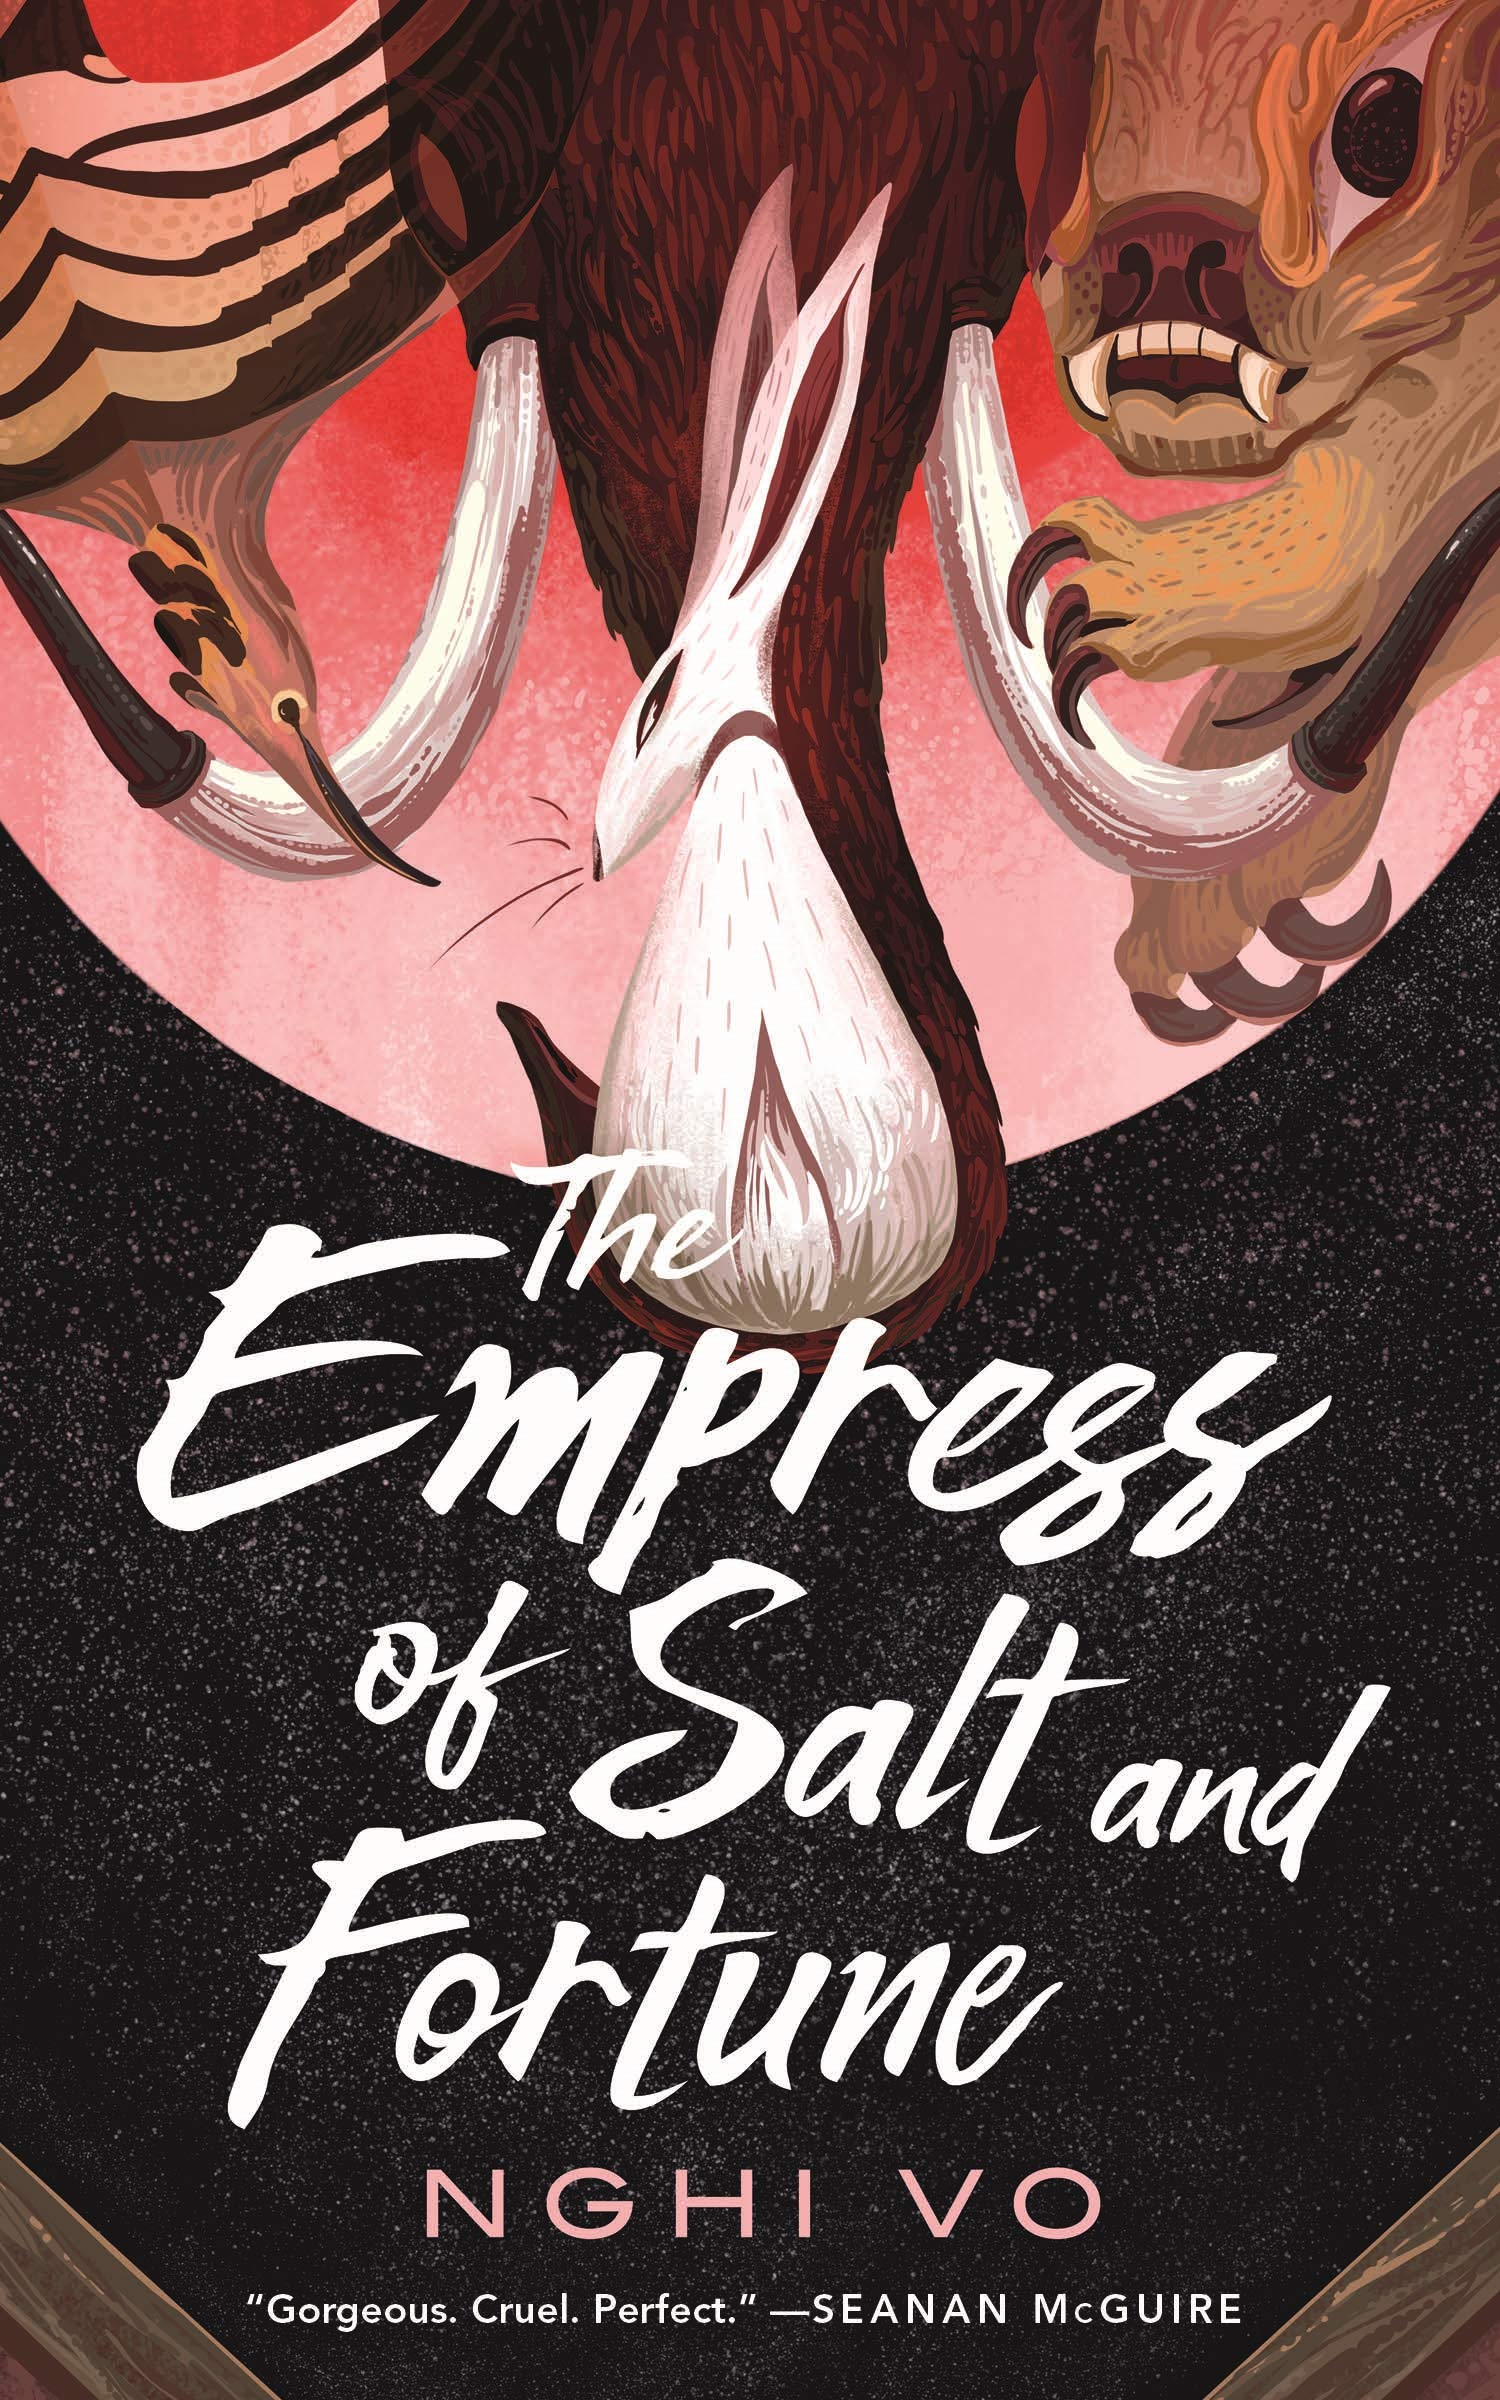 Amazon.com: The Empress of Salt and Fortune (The Singing Hills Cycle, 1)  (9781250750303): Vo, Nghi: Books